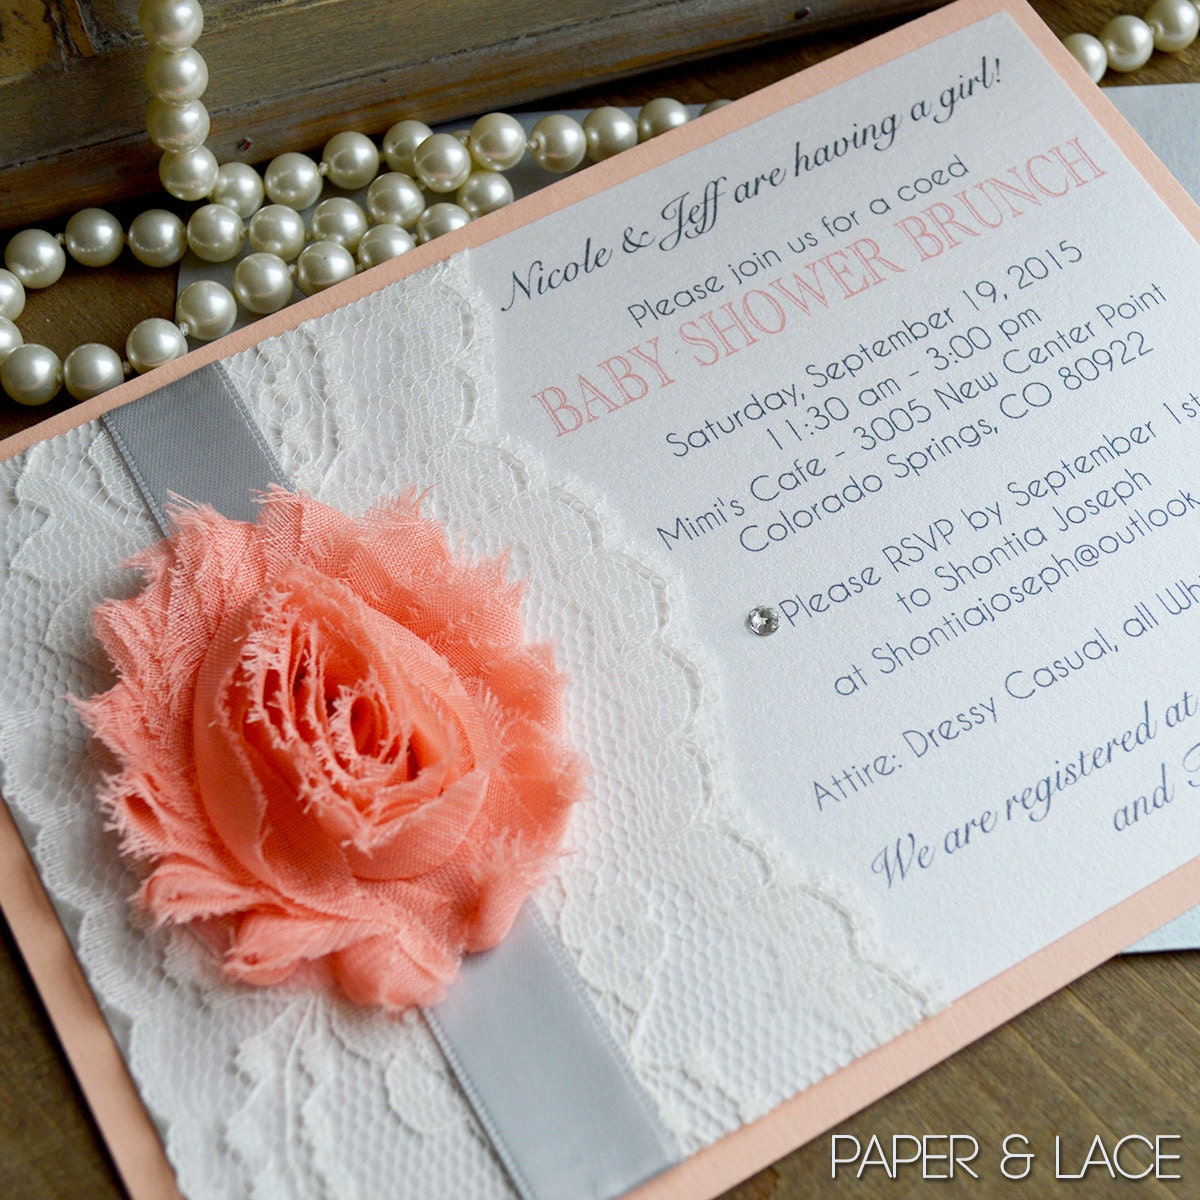 ccc4108b7c8 Lace Baby Shower Invitation - Chiffon Flower Invitation - Peach and ...